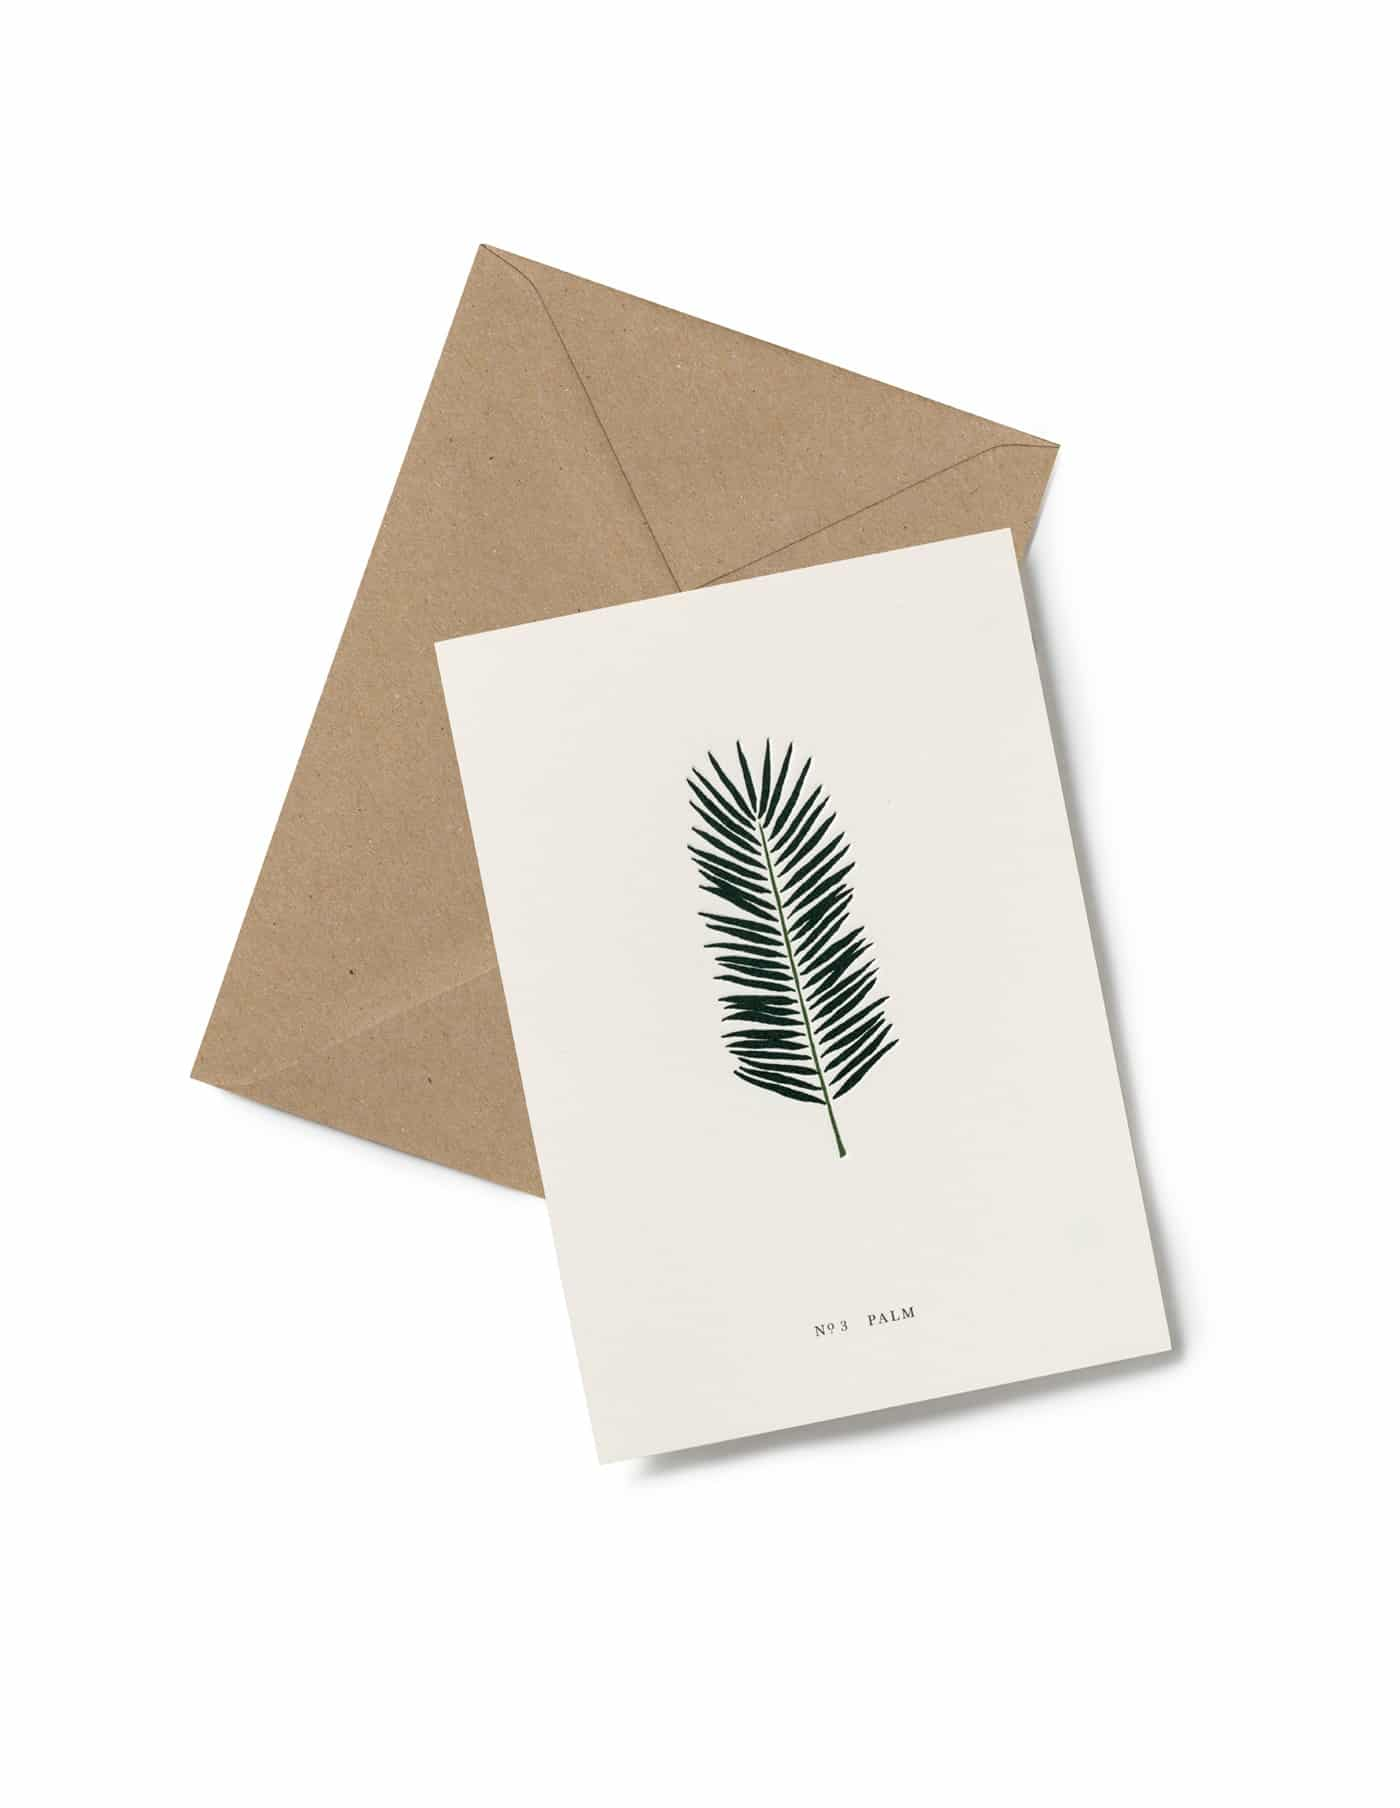 Kartotek 'No3 PALM' Greeting Card